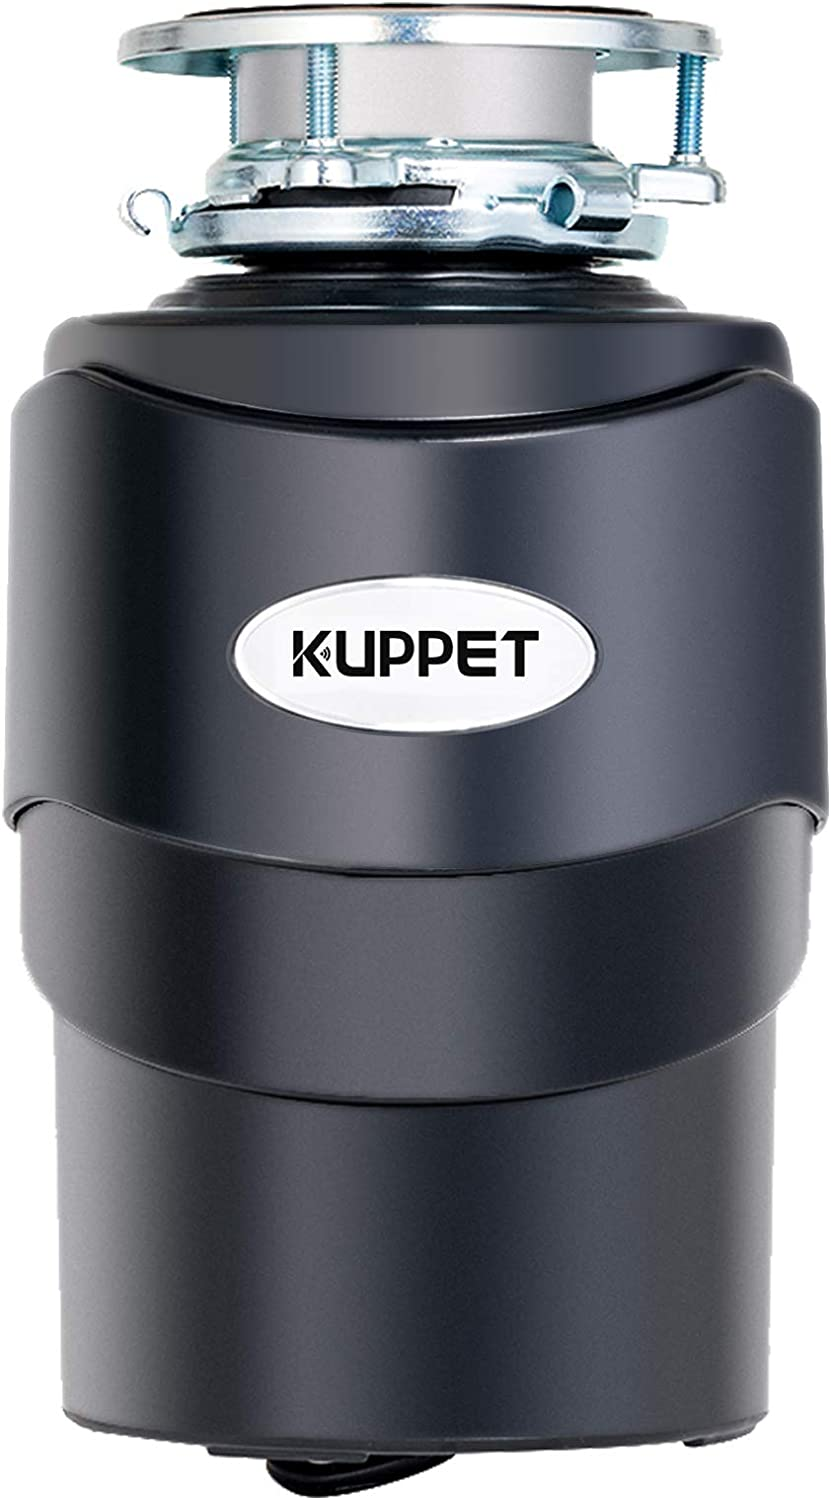 Garbage Disposals KUPPET 1/2 HP Food Waste Disposer with Power Cord 1700 RPM Continuous Feed Super Quiet&Easy to Install 40 OZ. Capacity Stainless Steel